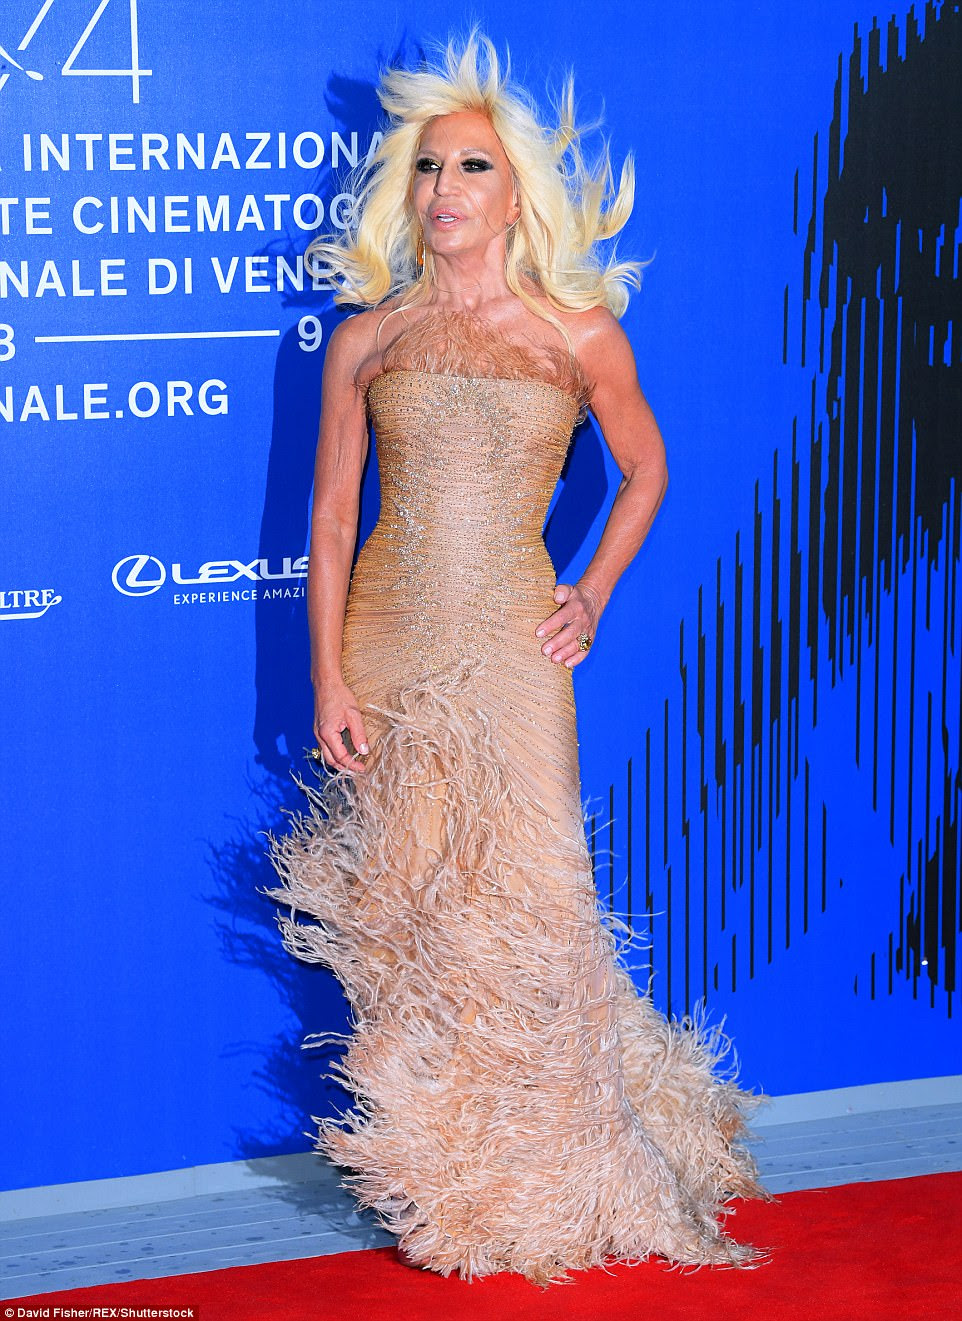 Show-stopping: Donatella Versace, 62, also stole the show in a nude bodycon fishtail gown